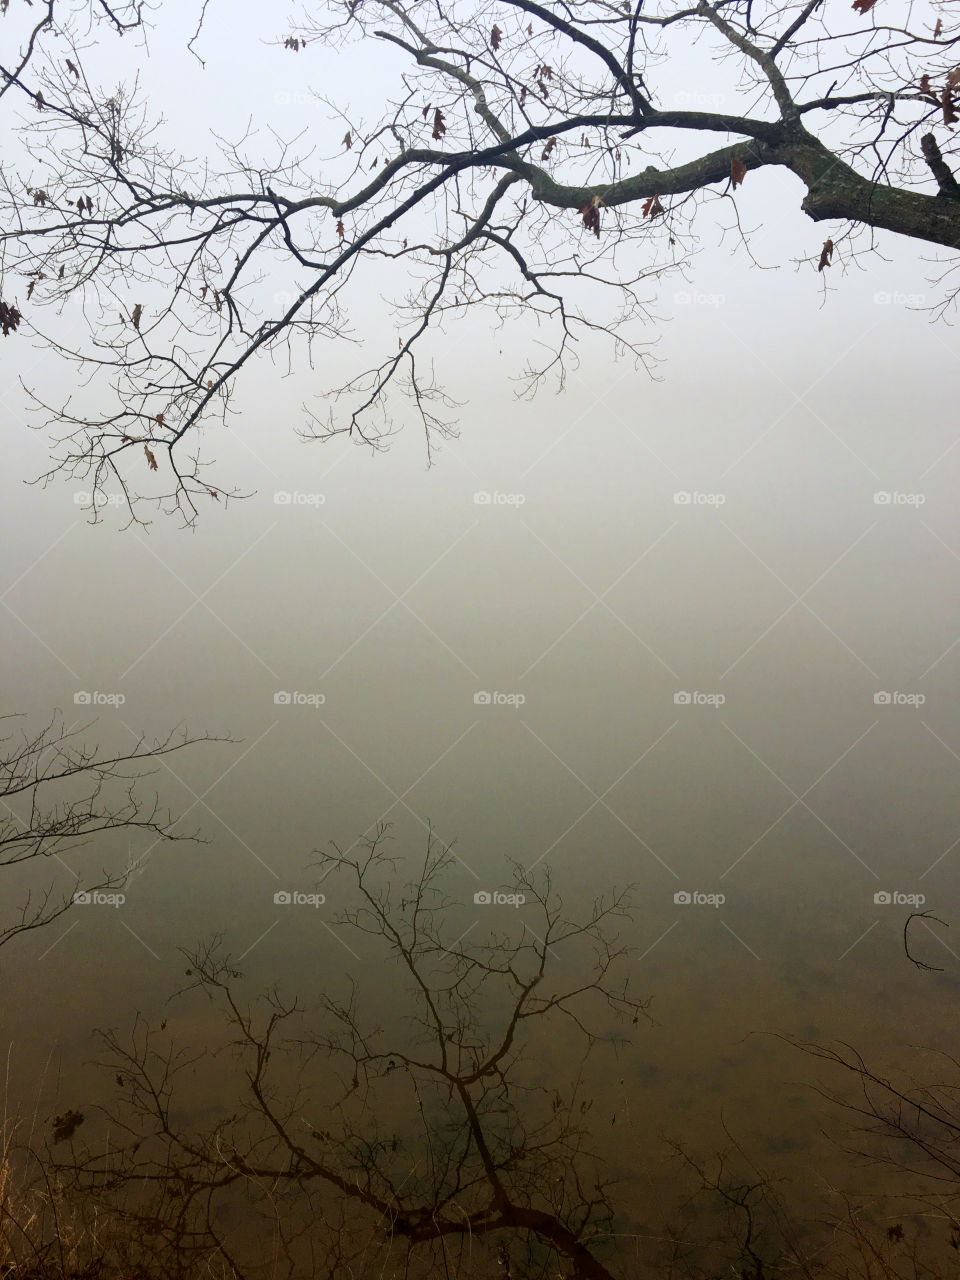 Mirror reflection of a barren tree branch on the placid surface of the water at a lake in North Carolina on a foggy morning